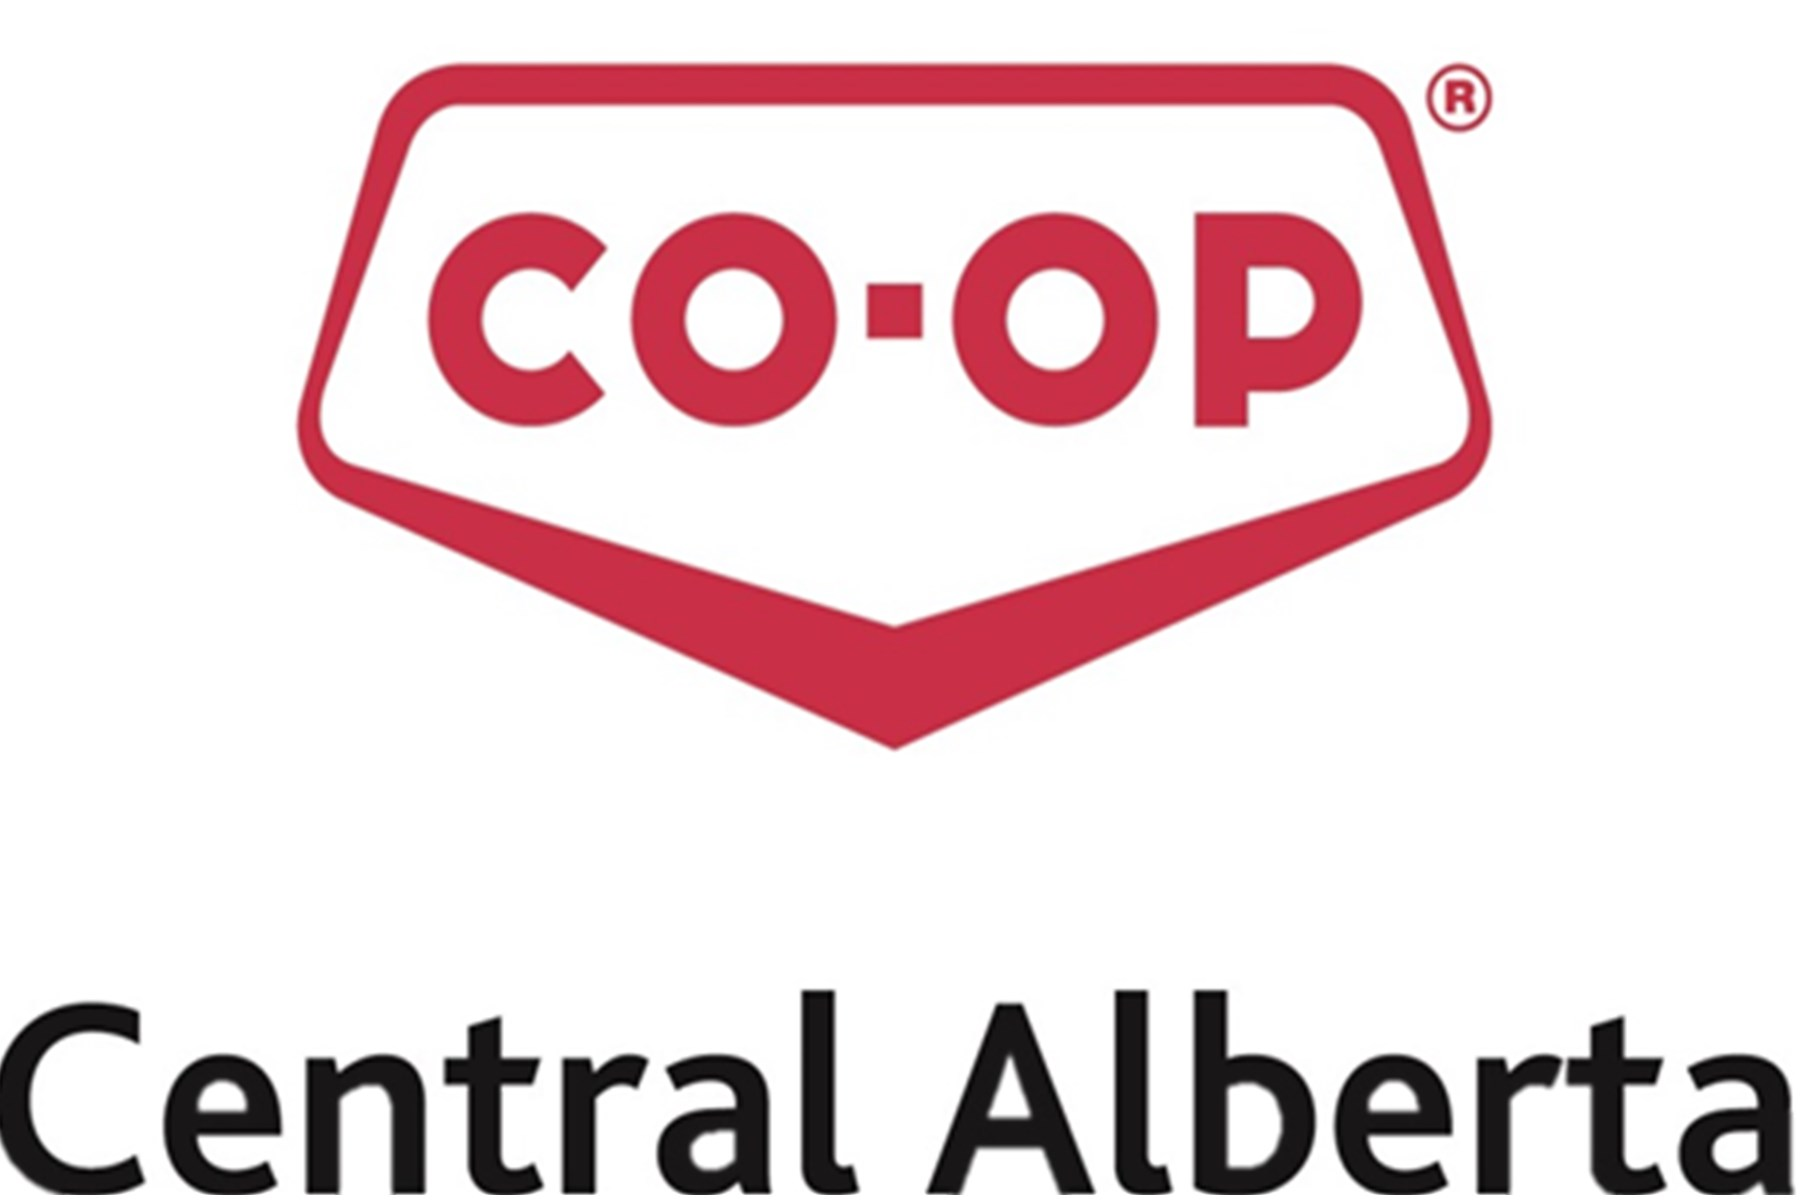 Central Alberta CO-OP